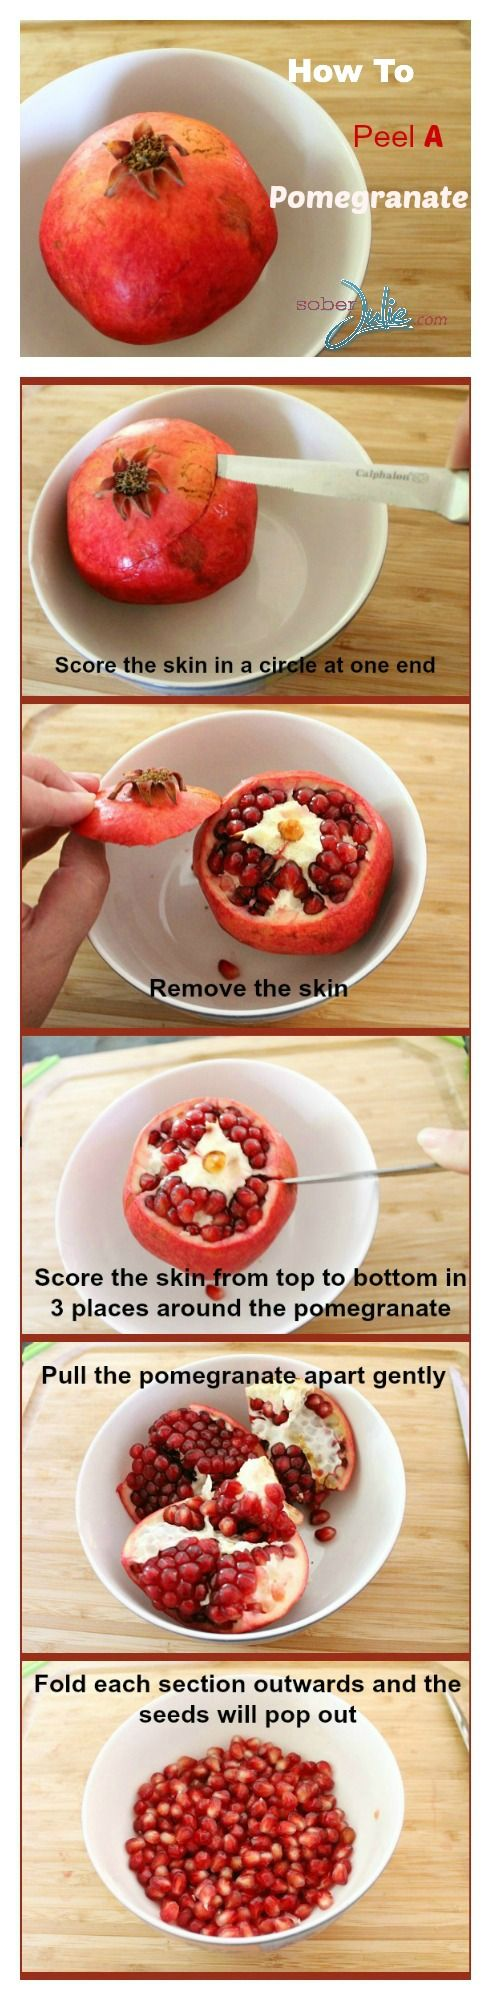 How To Peel A Pomegranate - @SoberJulie.com #whatisapomegranate: